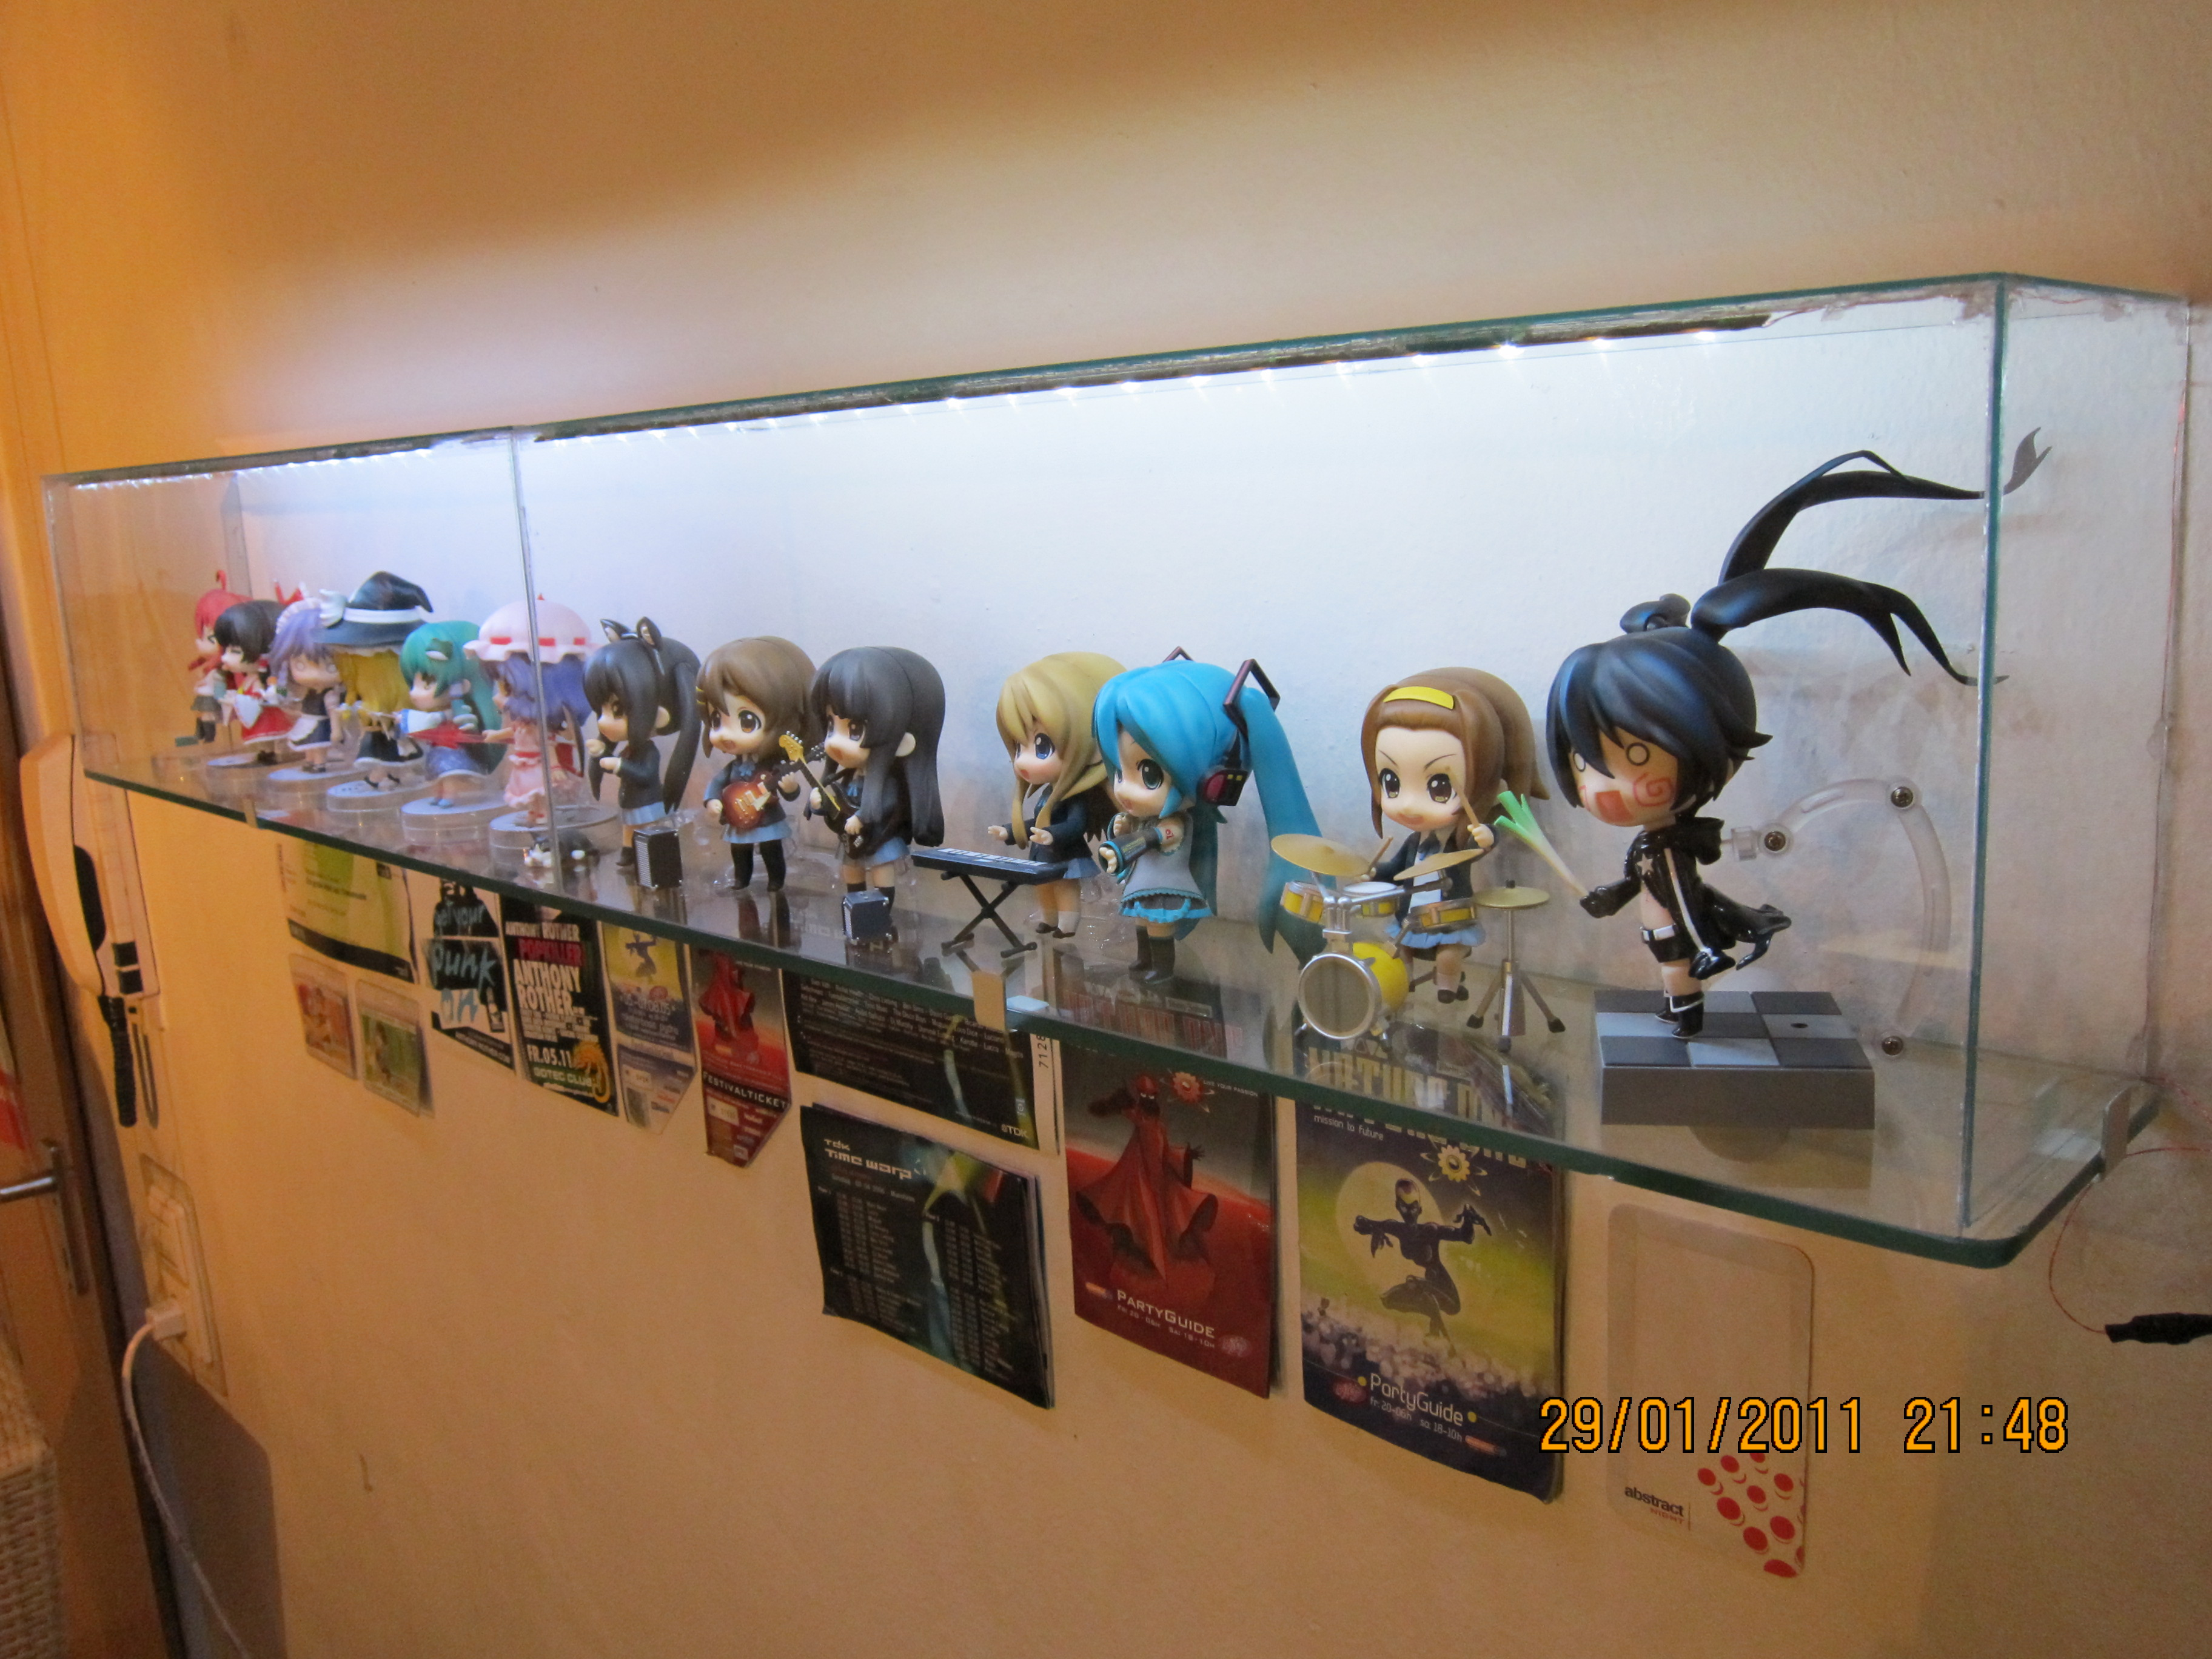 Nicely lit DIY Figure-Display-Cabinets